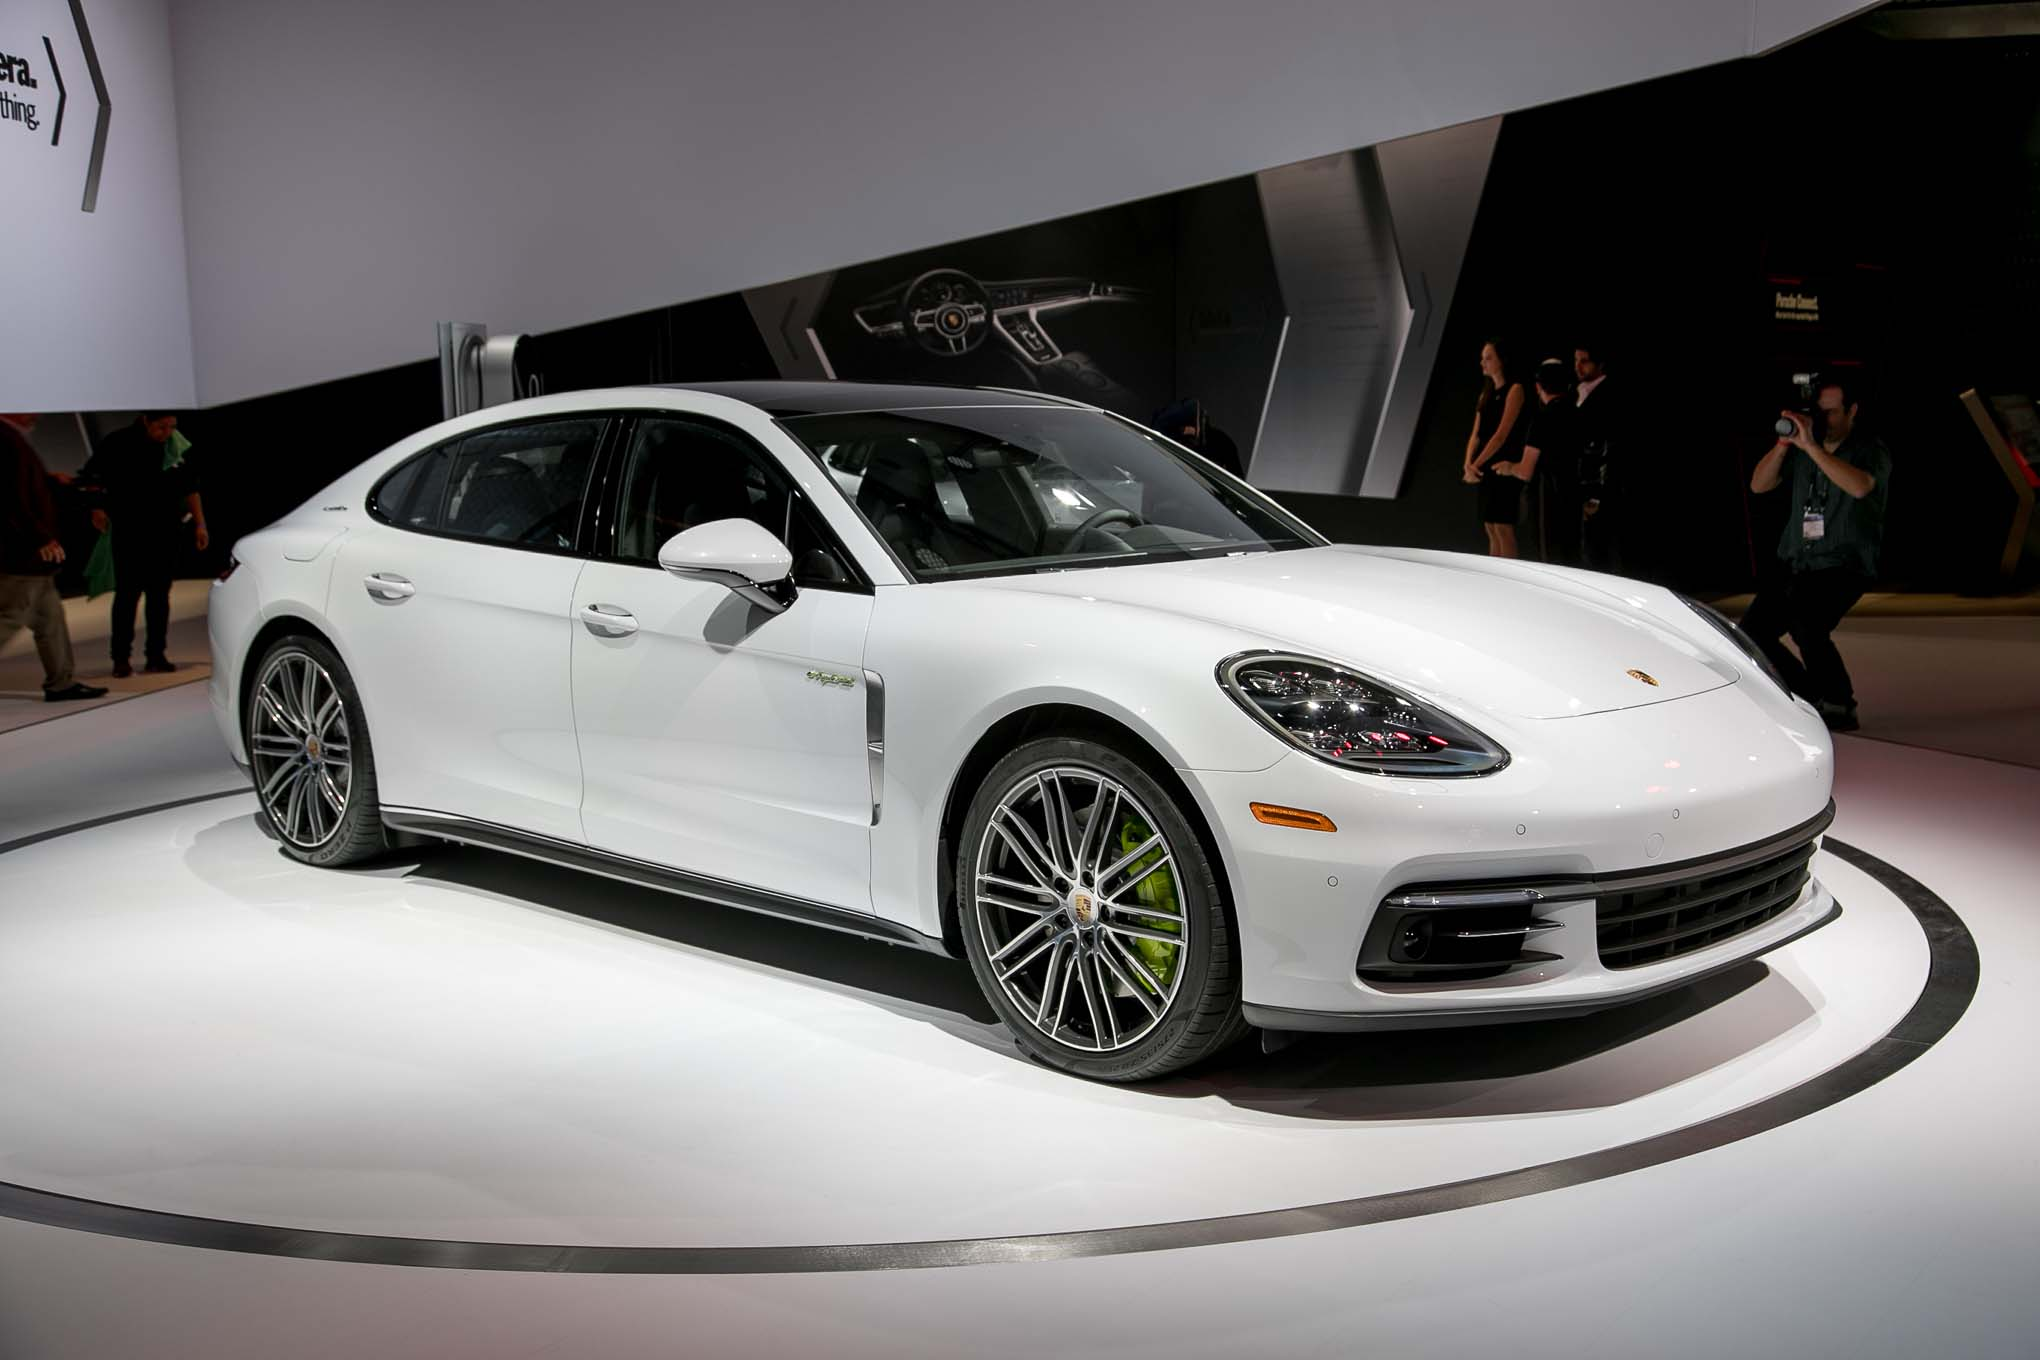 2017 Porsche Panamera 4 E Hybrid Executive front three quarters